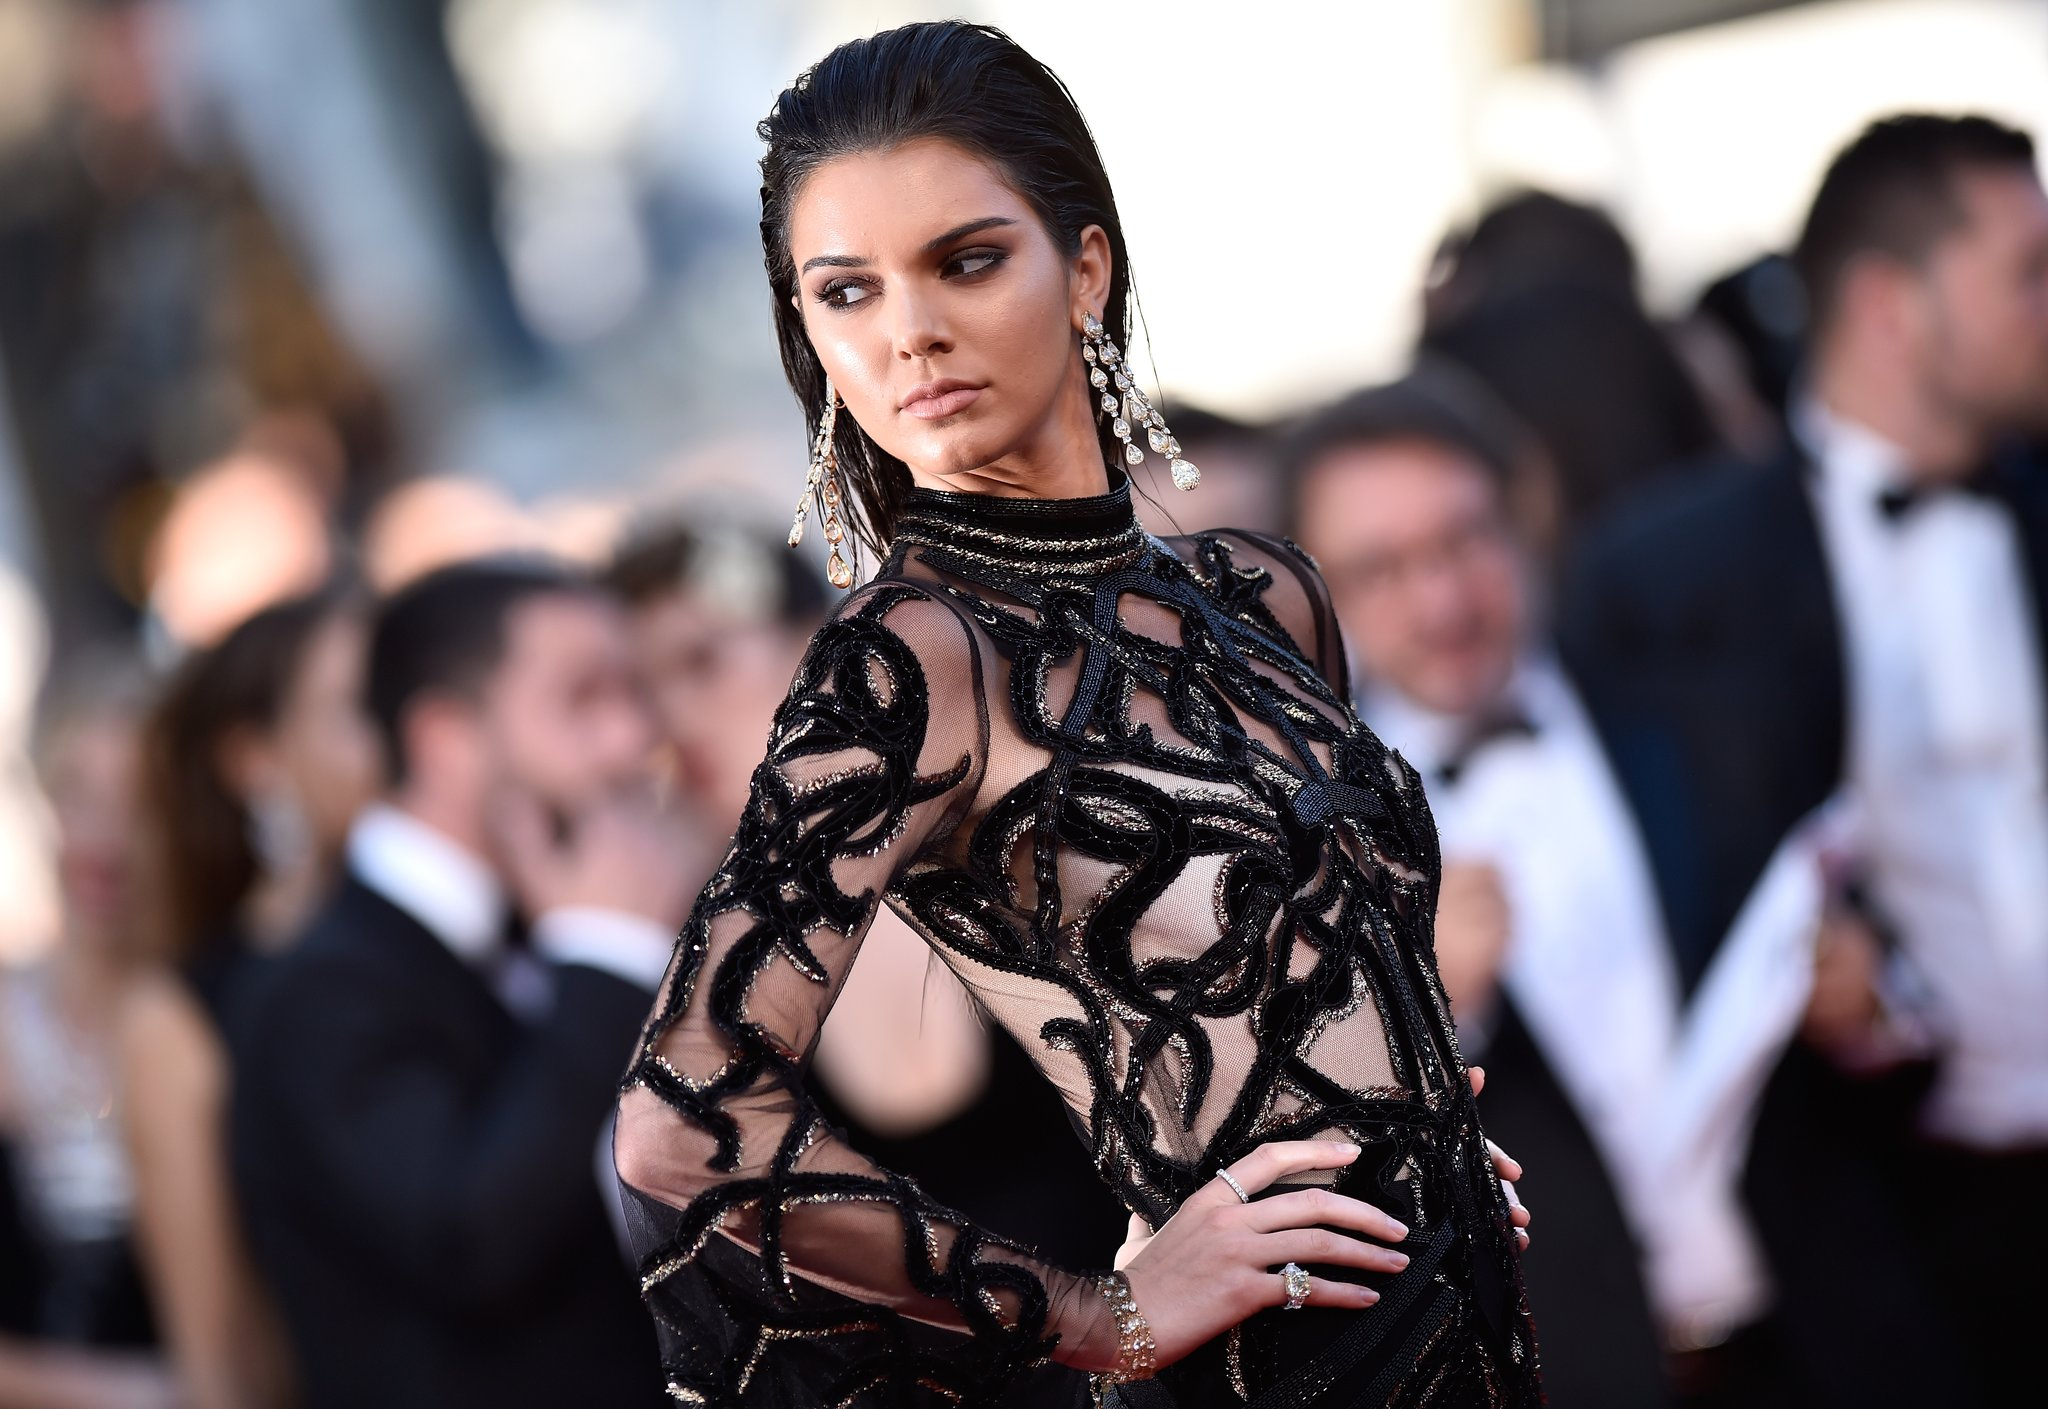 In Pictures: The Rise of Kendall Jenner